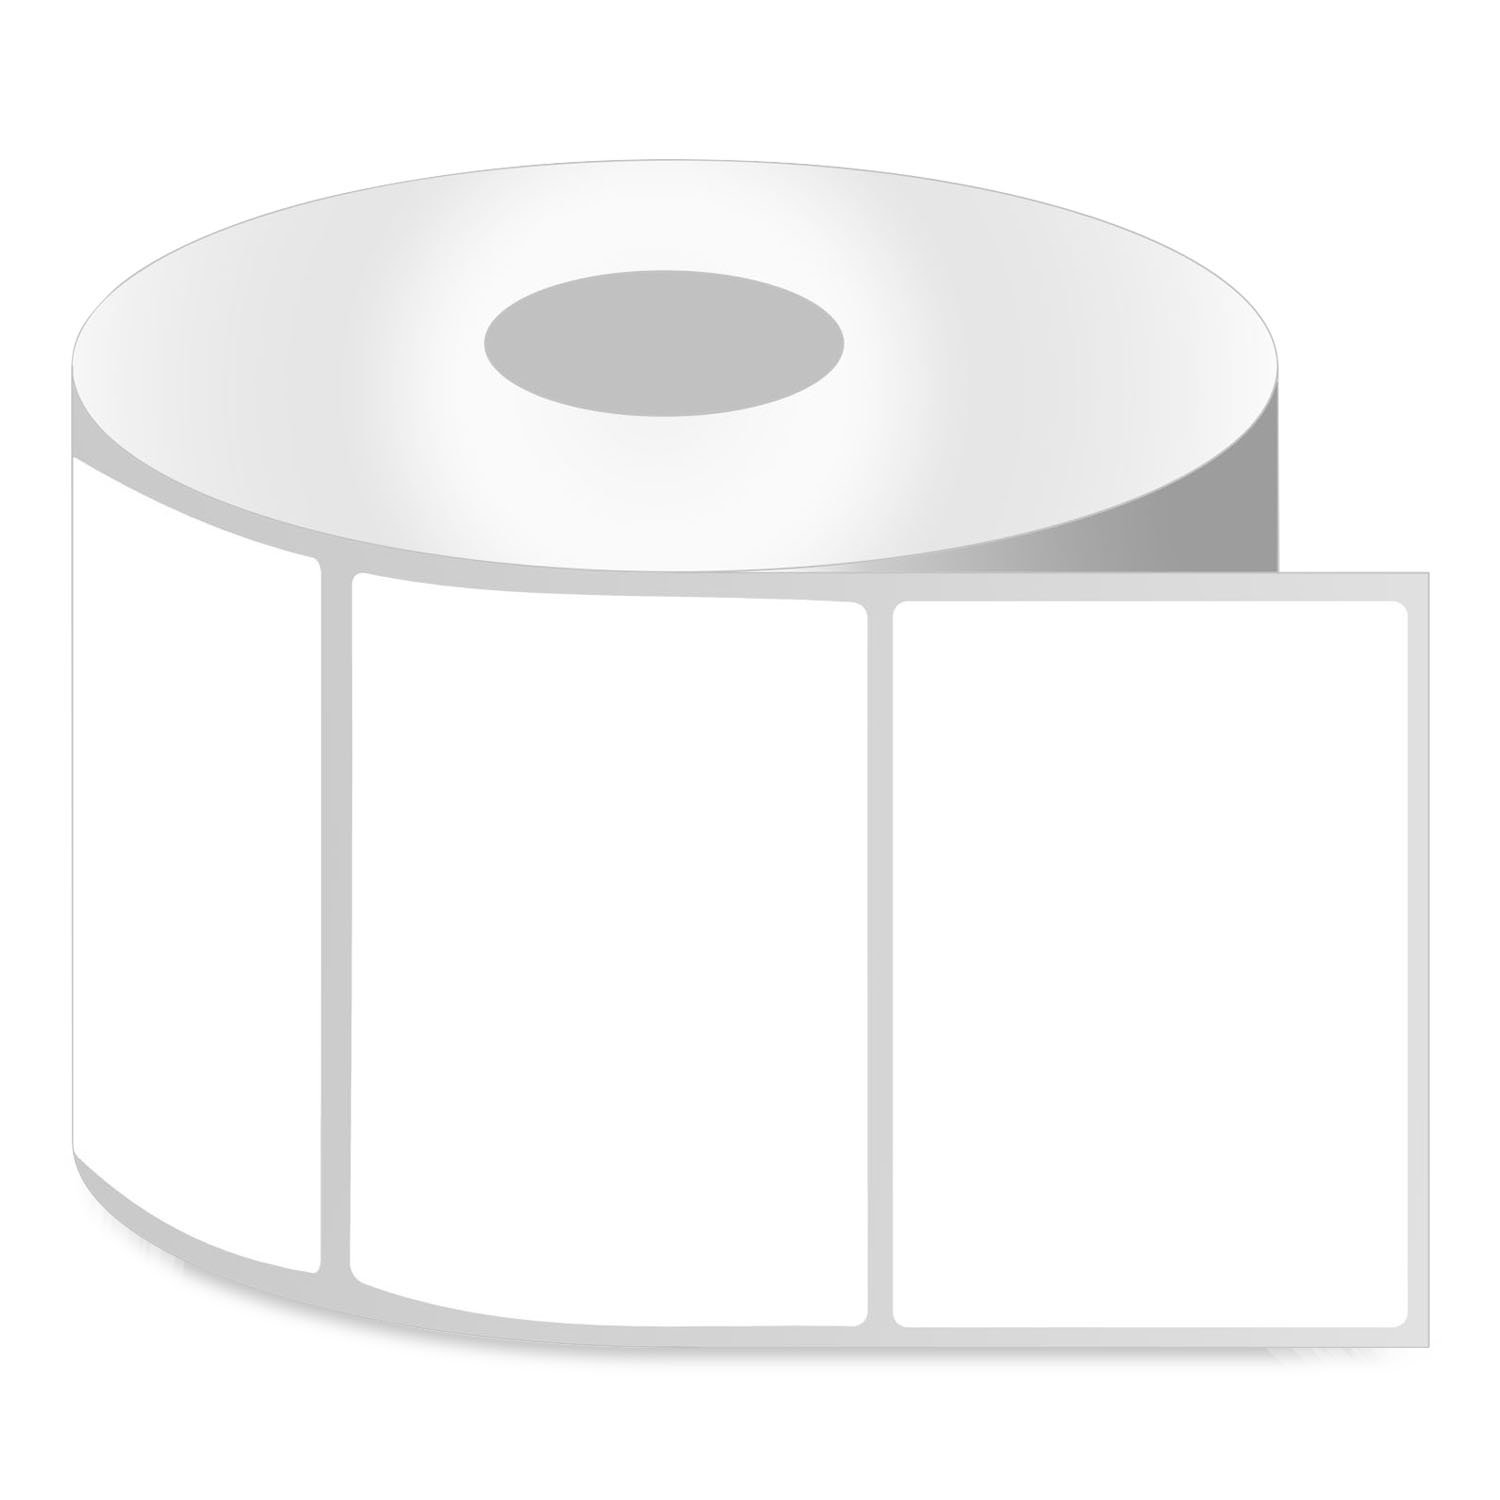 [10 Rolls / 9500 Labels] SOJITEK ZE1300112 3'' x 1.5'' Direct Thermal Labels, Compatible with Zebra Printers Barcode Shipping Address Mailing FBA Stickers SKU Labels - 1'' Core by SOJITEK